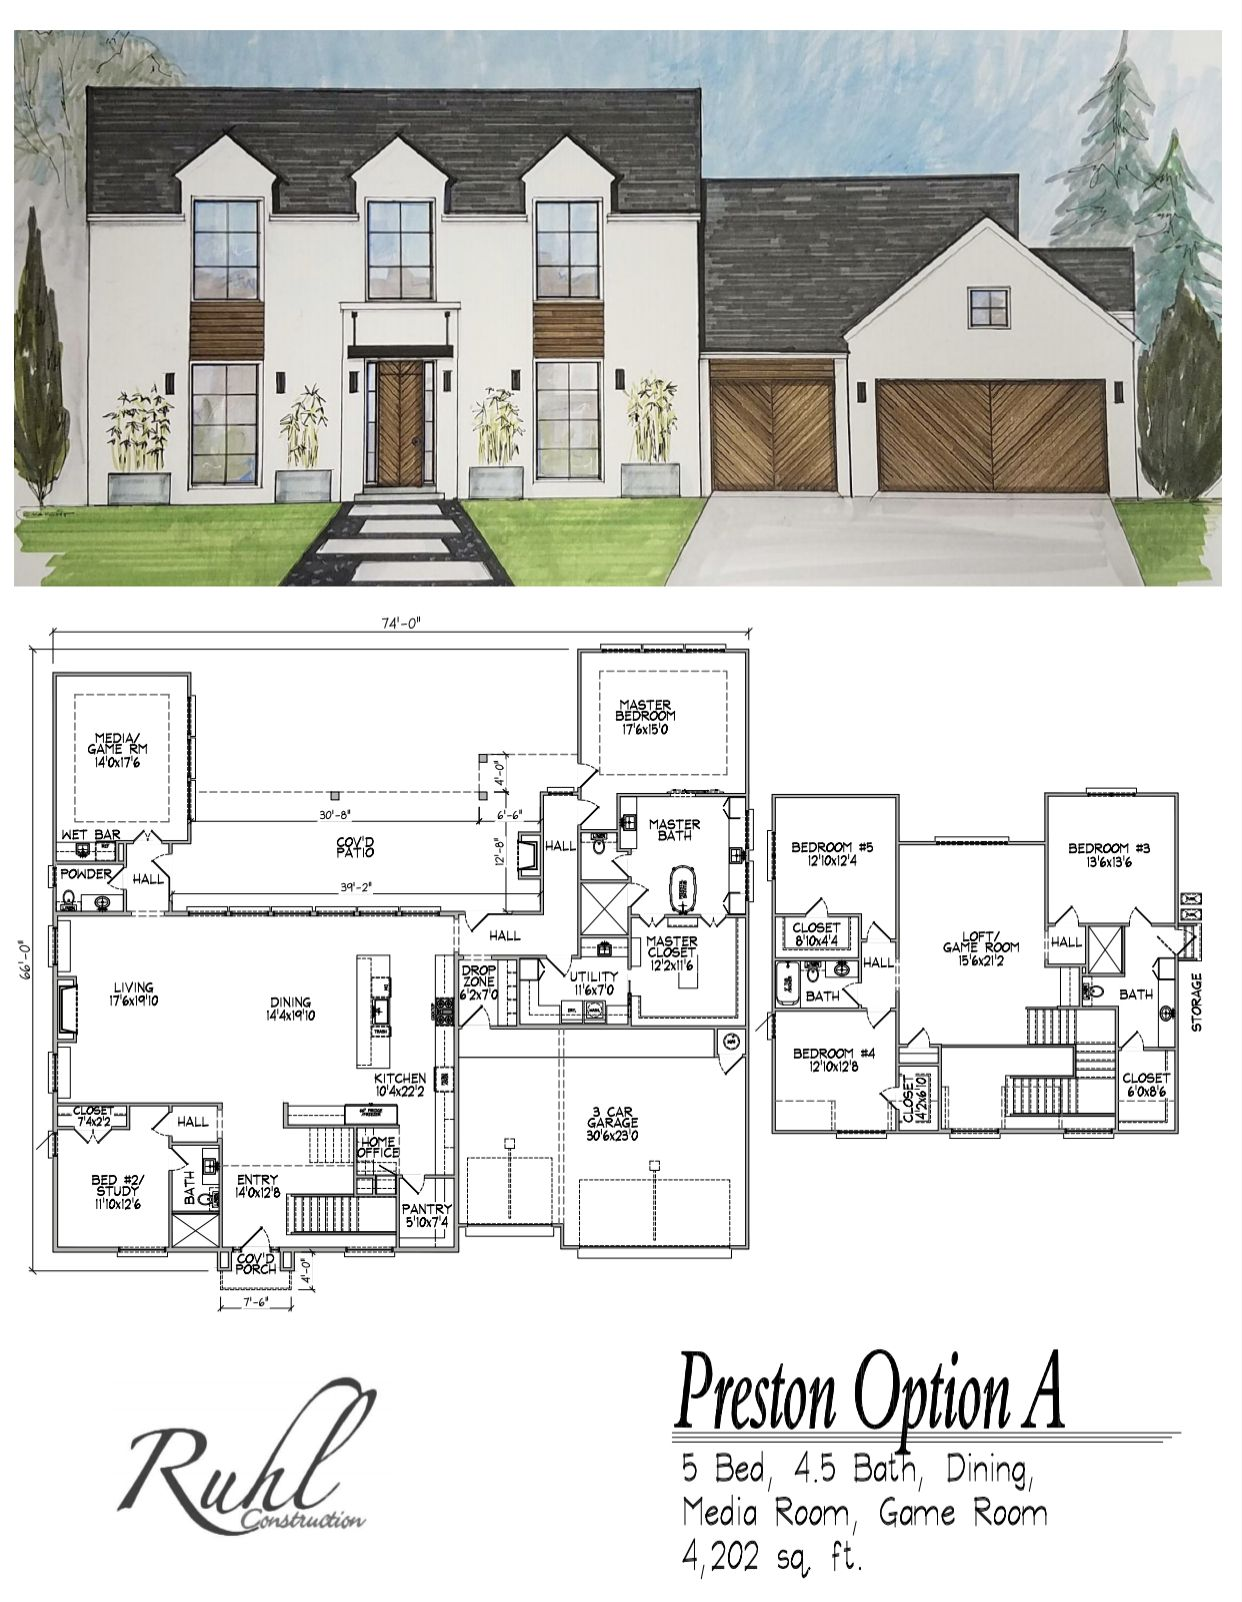 Ruhl Construction Floor Plans Tulsa s Most Trusted Home Builders